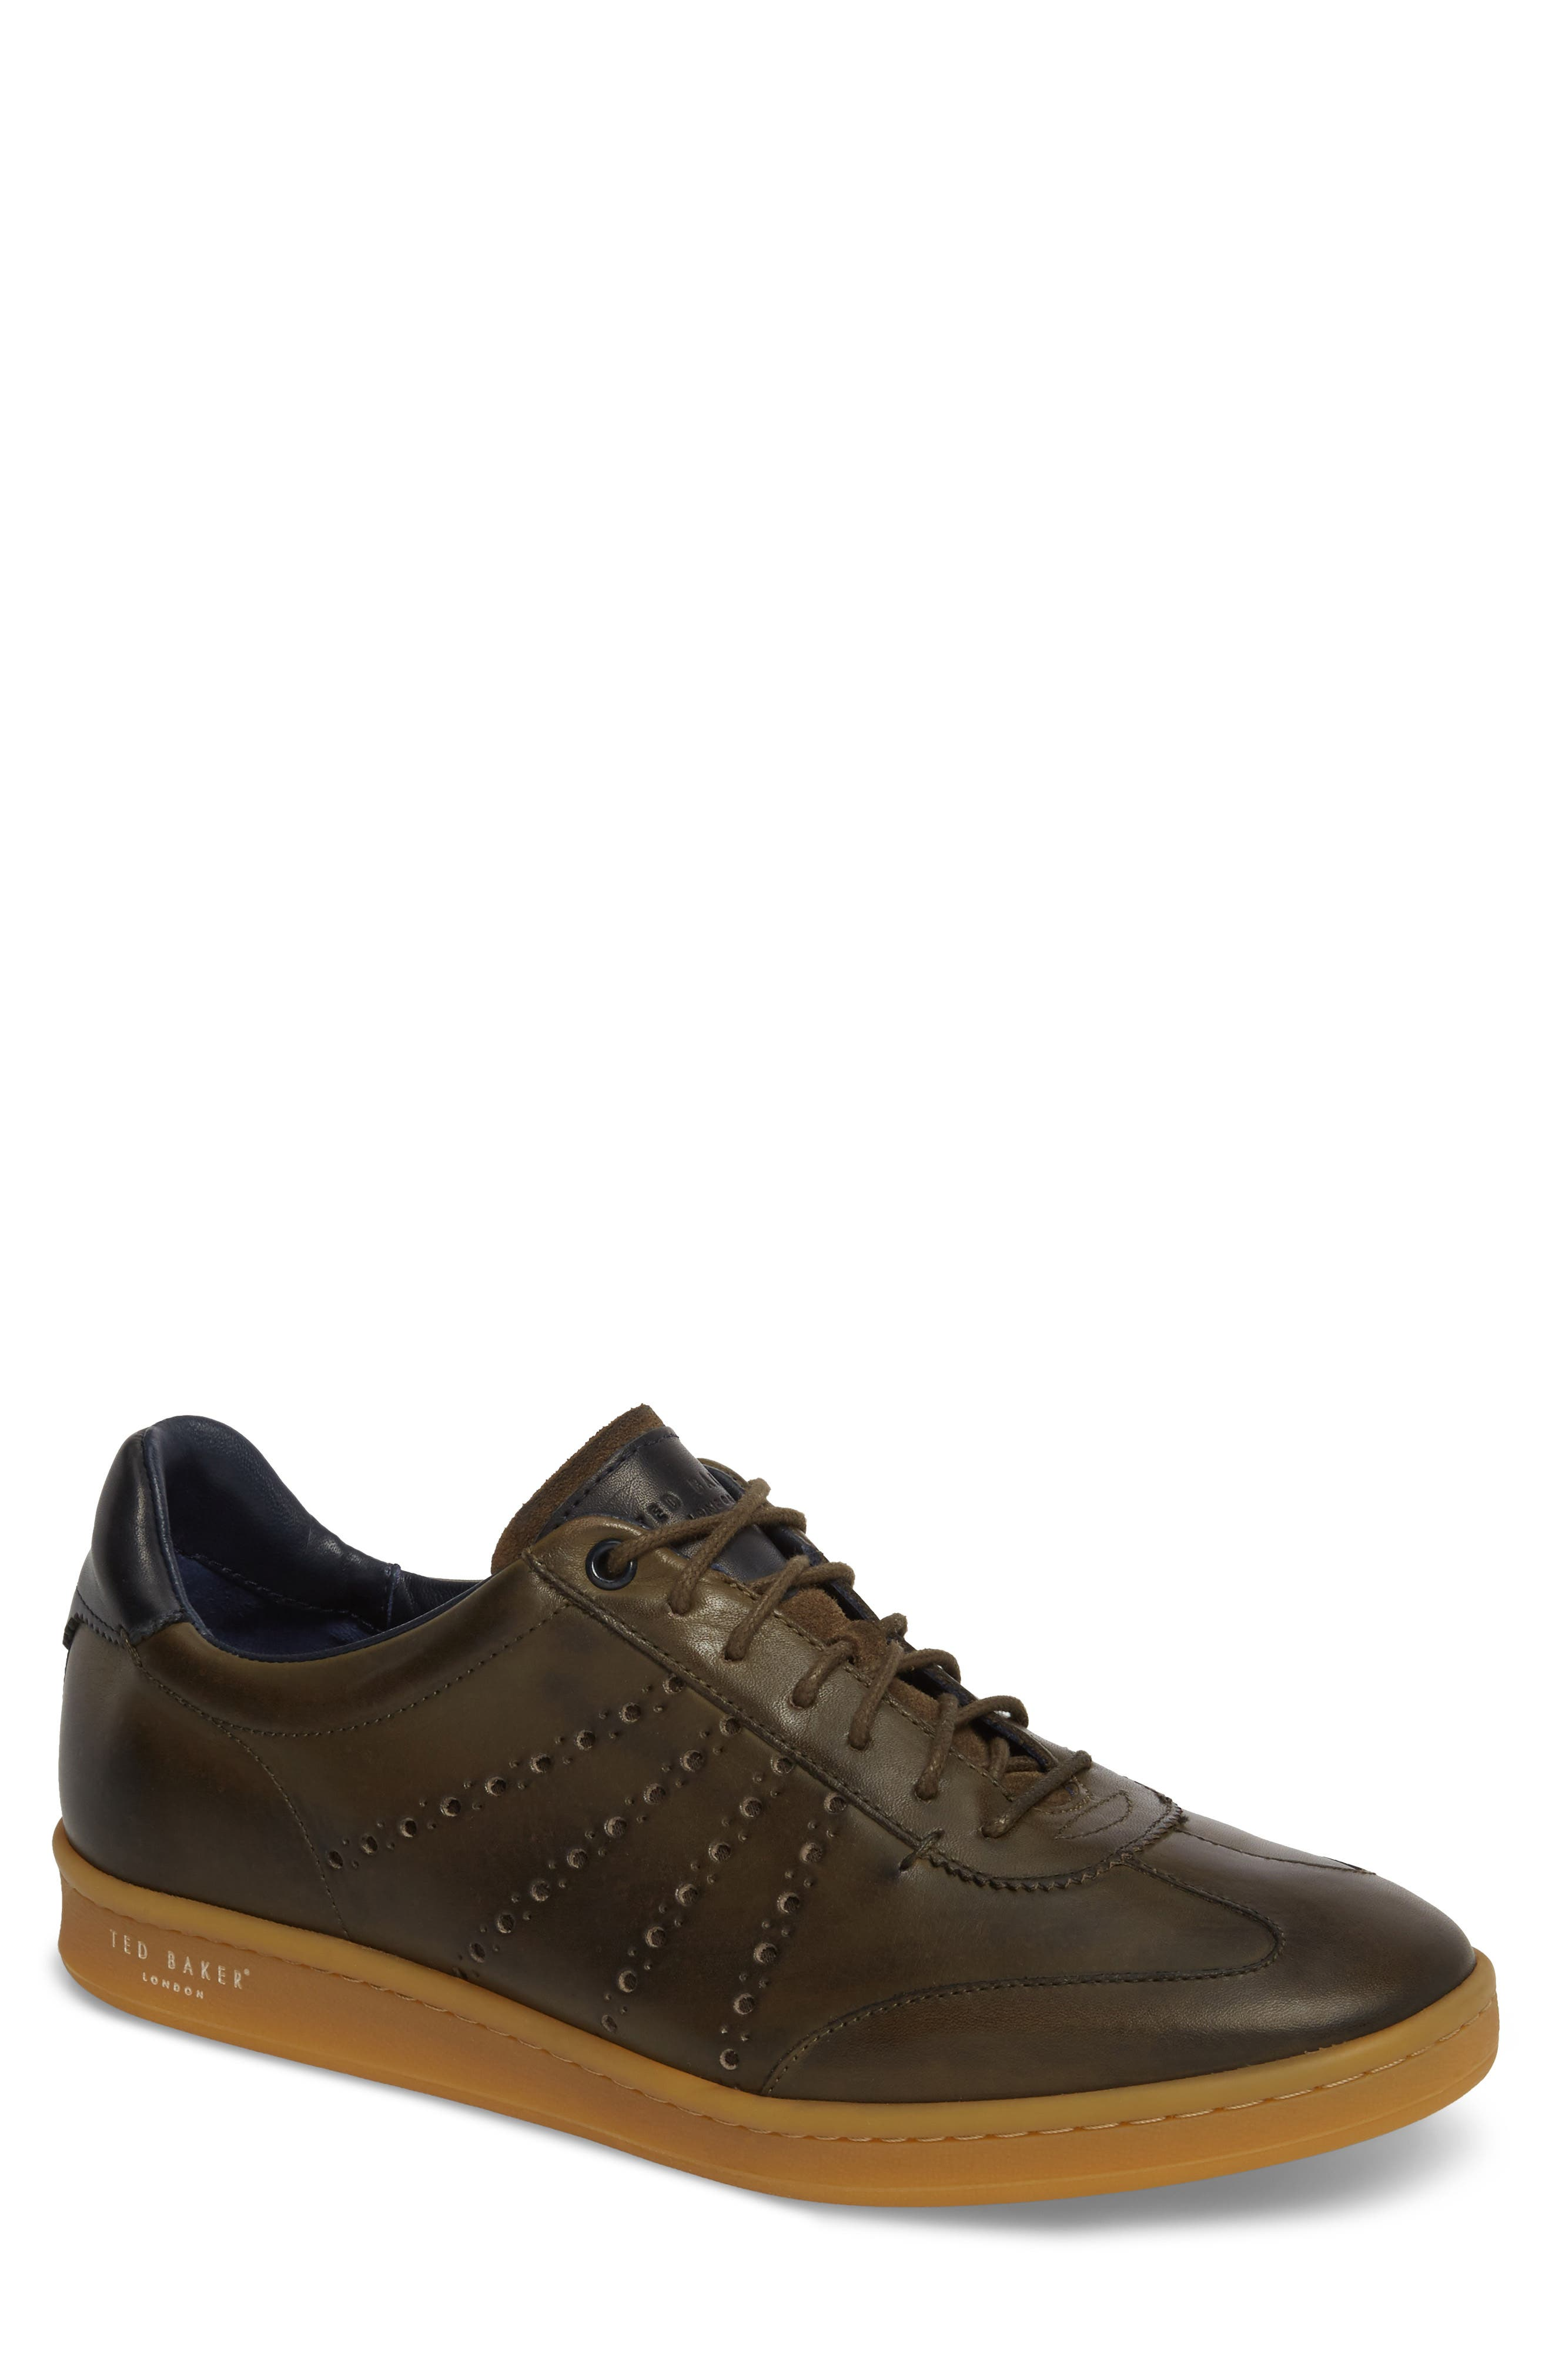 Orlee Sneaker,                             Main thumbnail 1, color,                             Dark Green Leather